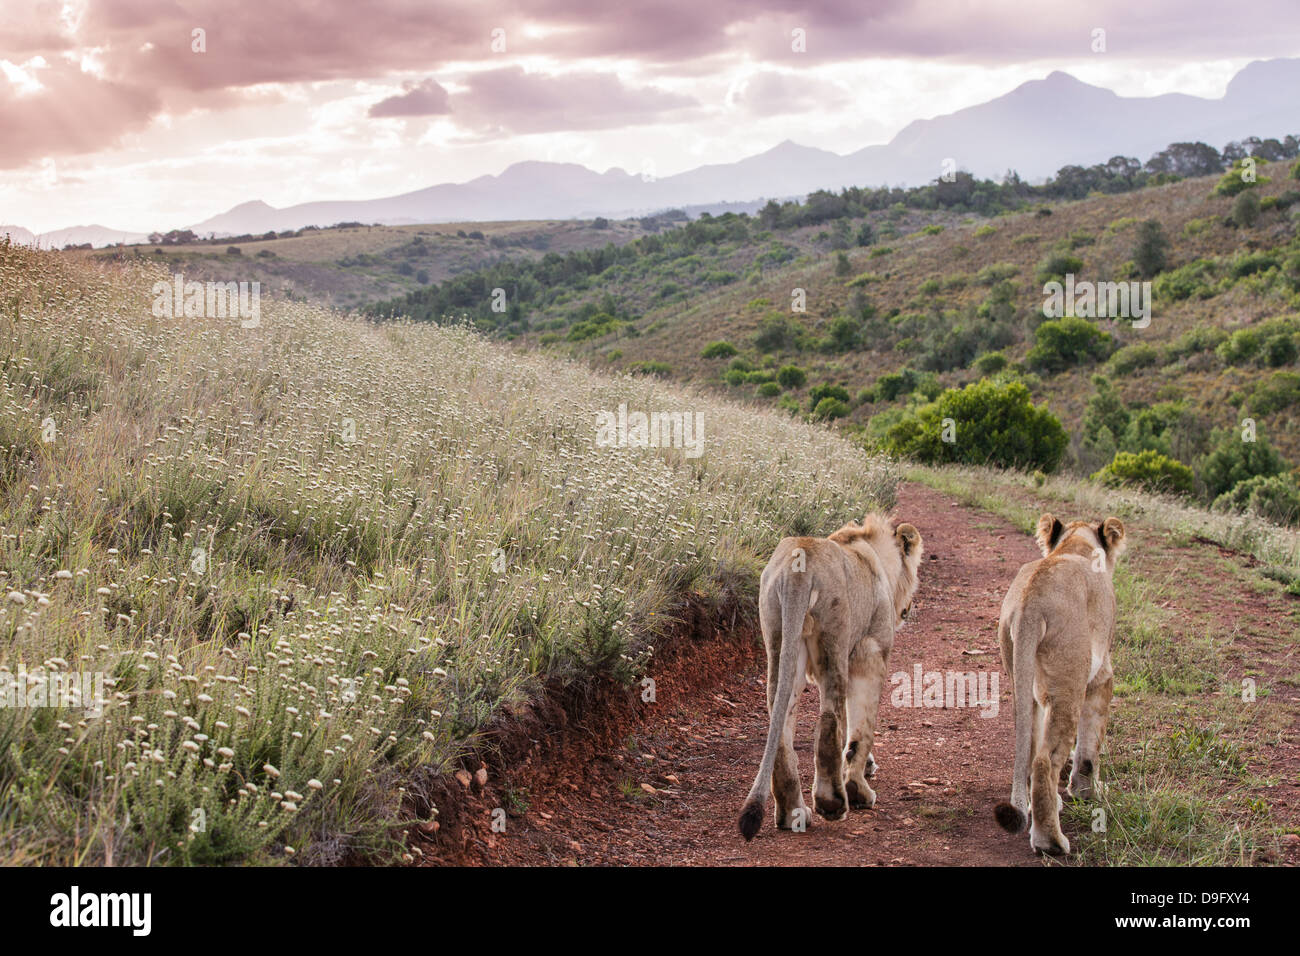 Two lions walking off into sunset on a dirt road depicting togetherness and friendship, Western Cape, South Africa, - Stock Image